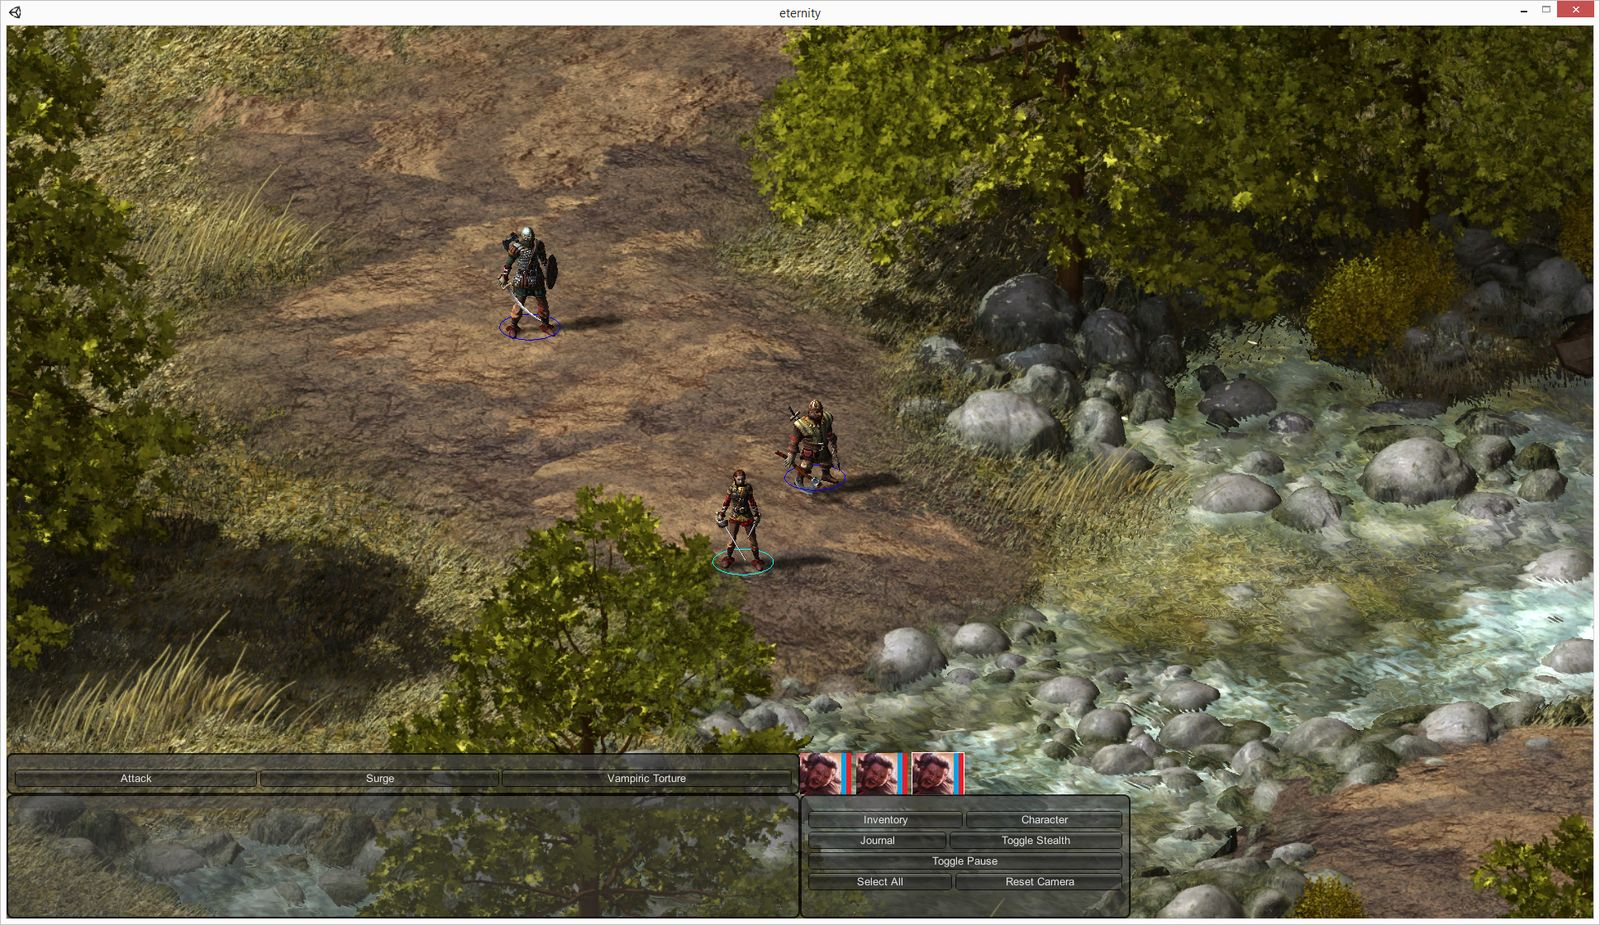 A screenshot from a Pillars of Eternity prototype circa March 2013. (Image courtesy of Obsidian.)